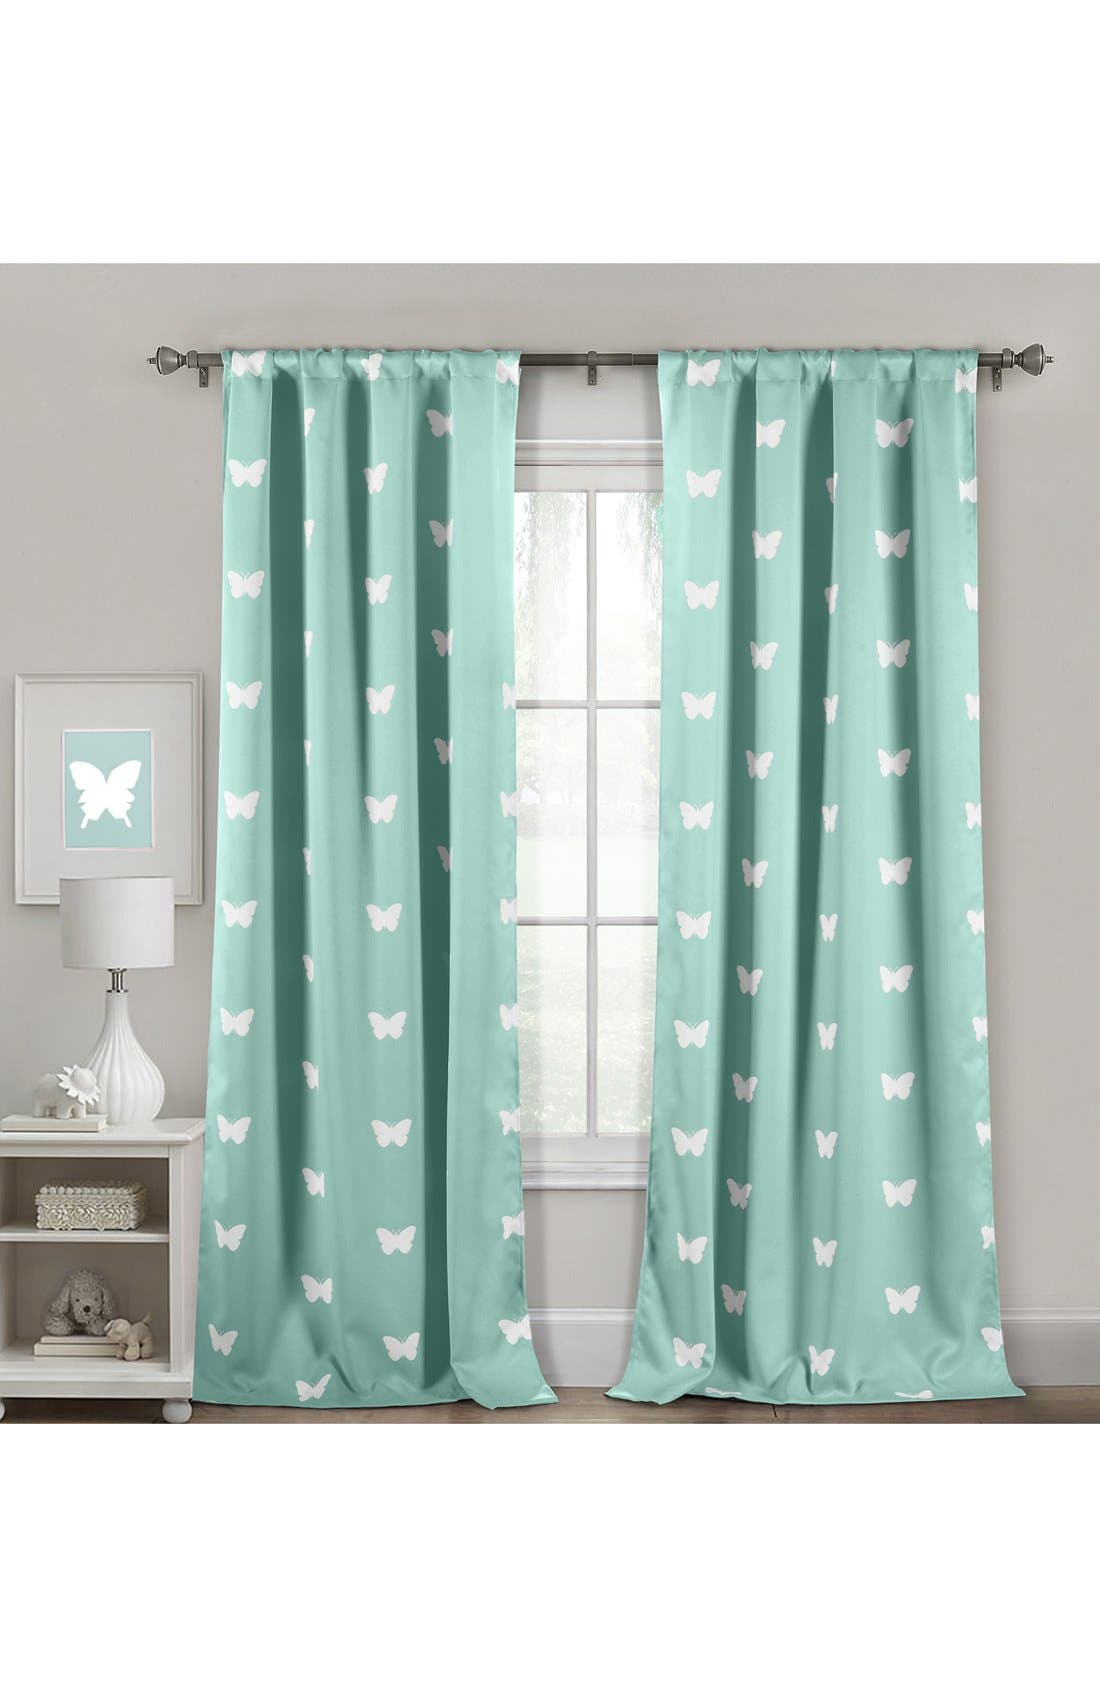 Window Treatments | Curtains, Valances & Window Panels | Nordstrom